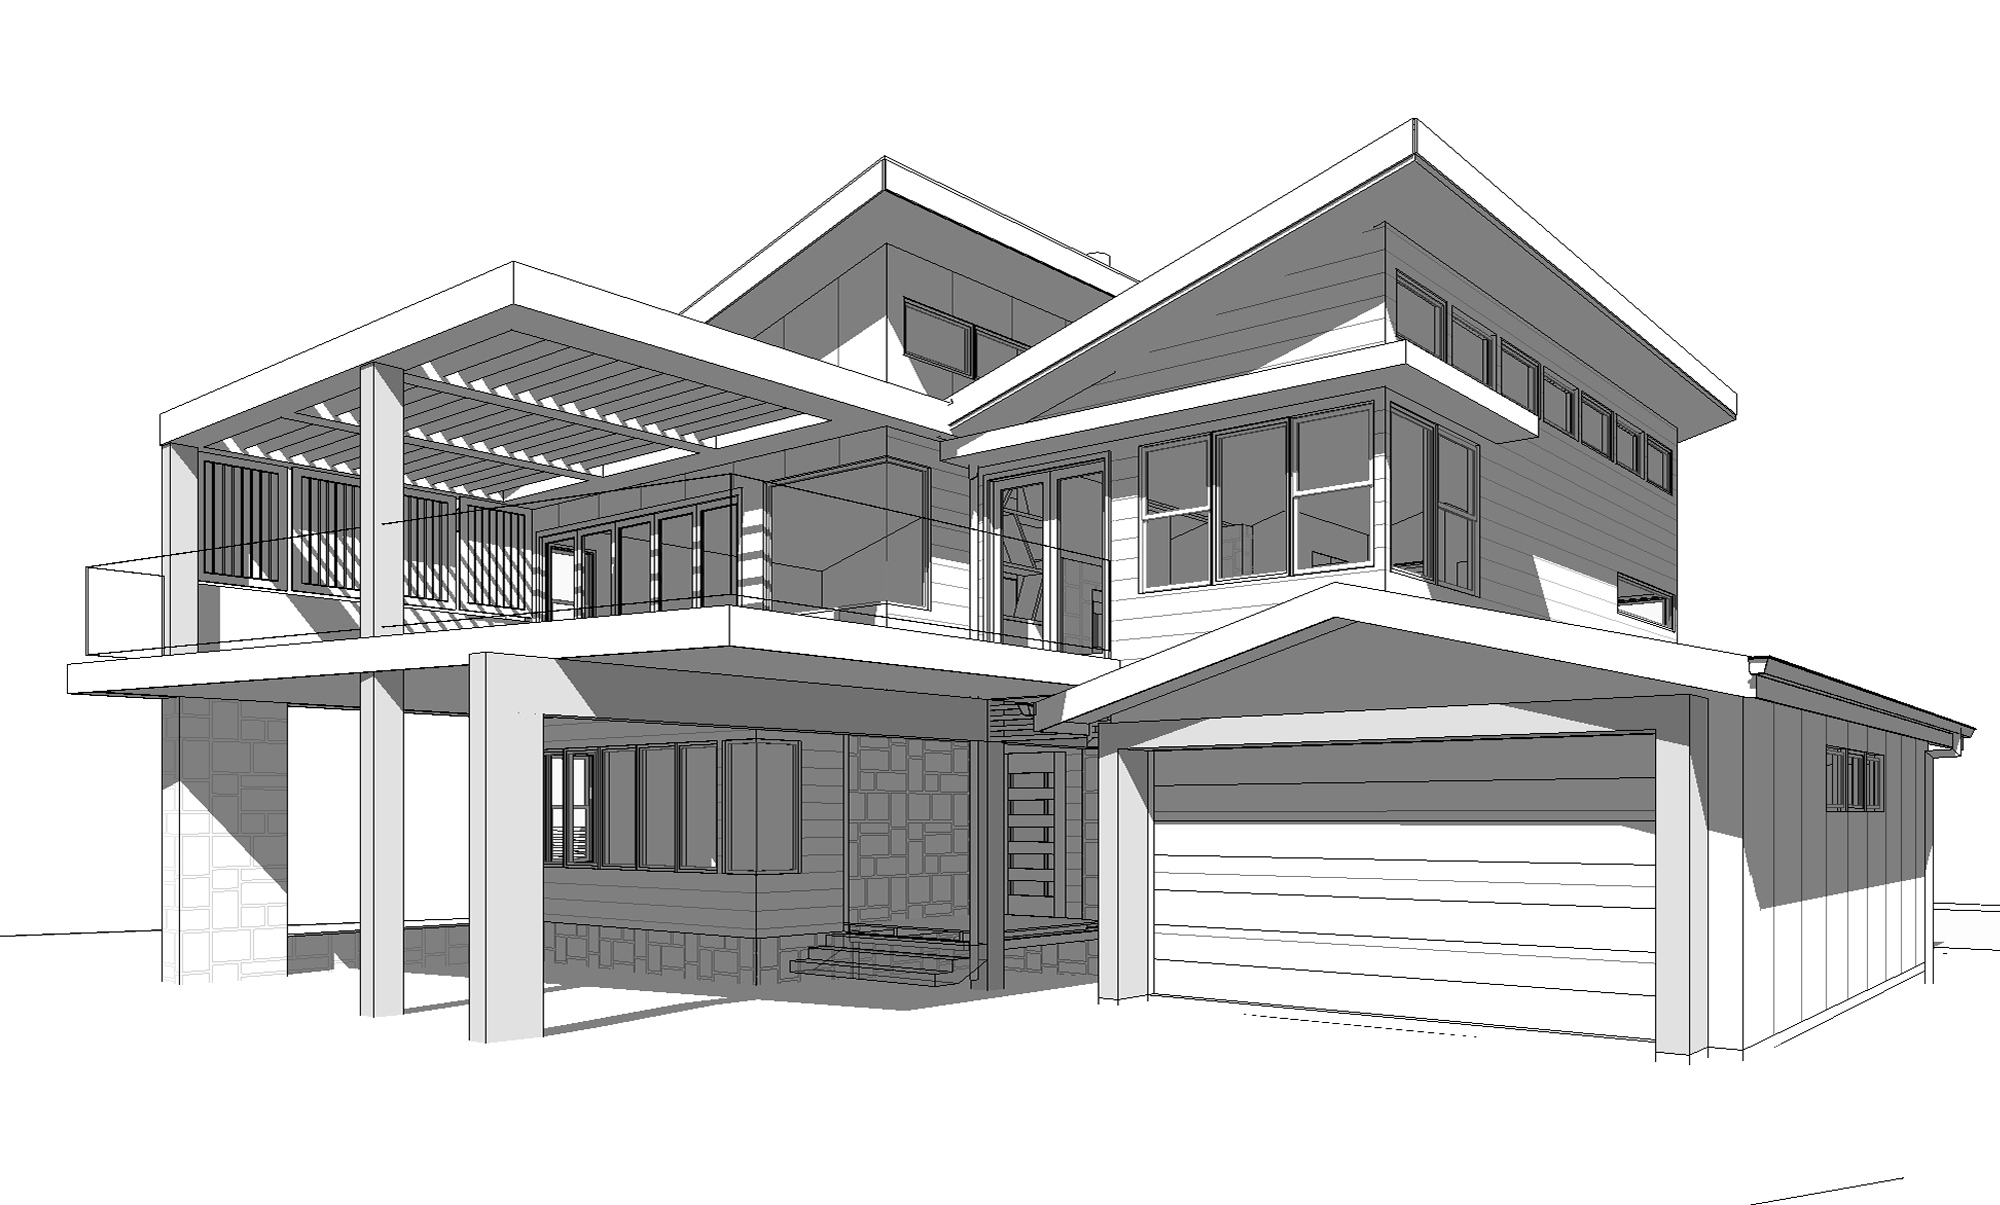 Architecture Design Drawing Building Architectural Drawing Stock Images Royalty Free Images